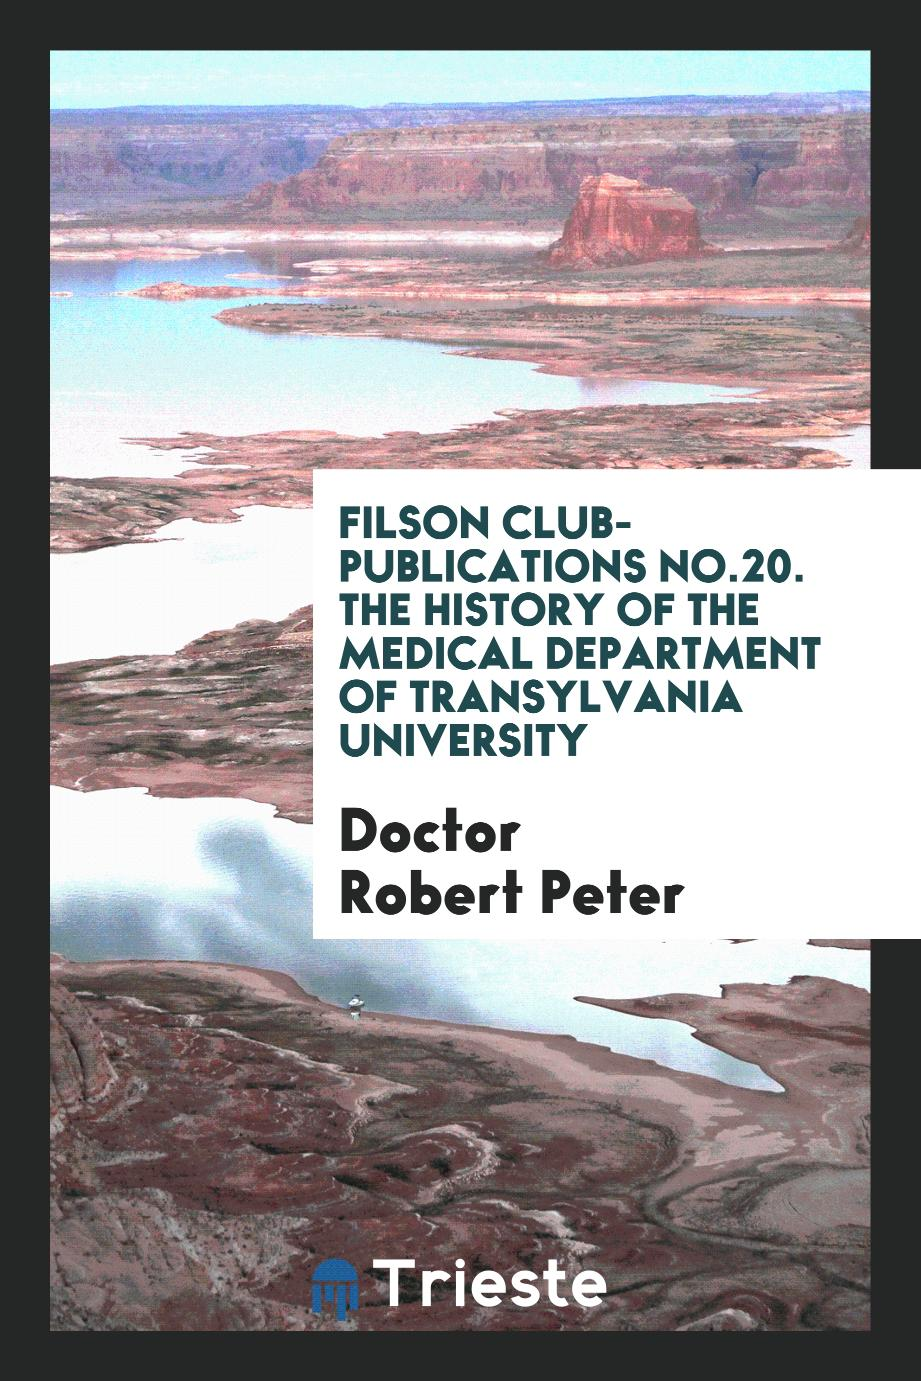 Filson club-publications No.20. The history of the medical department of Transylvania University